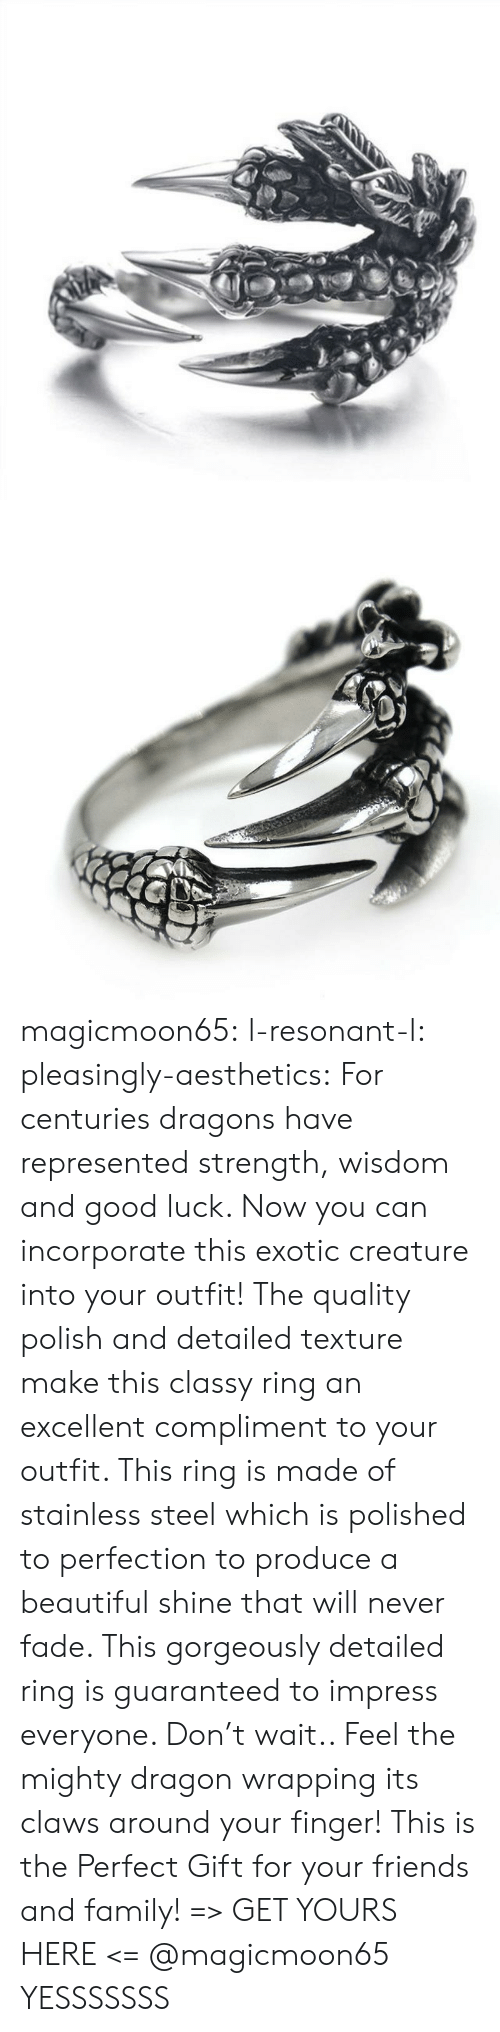 Beautiful, Family, and Friends: magicmoon65:  l-resonant-l:  pleasingly-aesthetics: For centuries dragons have represented strength, wisdom and good luck. Now you can incorporate this exotic creature into your outfit! The quality polish and detailed texture make this classy ring an excellent compliment to your outfit. This ring is made of stainless steel which is polished to perfection to produce a beautiful shine that will never fade.  This gorgeously detailed ring is guaranteed to impress everyone. Don't wait.. Feel the mighty dragon wrapping its claws around your finger! This is the Perfect Gift for your friends and family! => GET YOURS HERE <=   @magicmoon65   YESSSSSSS